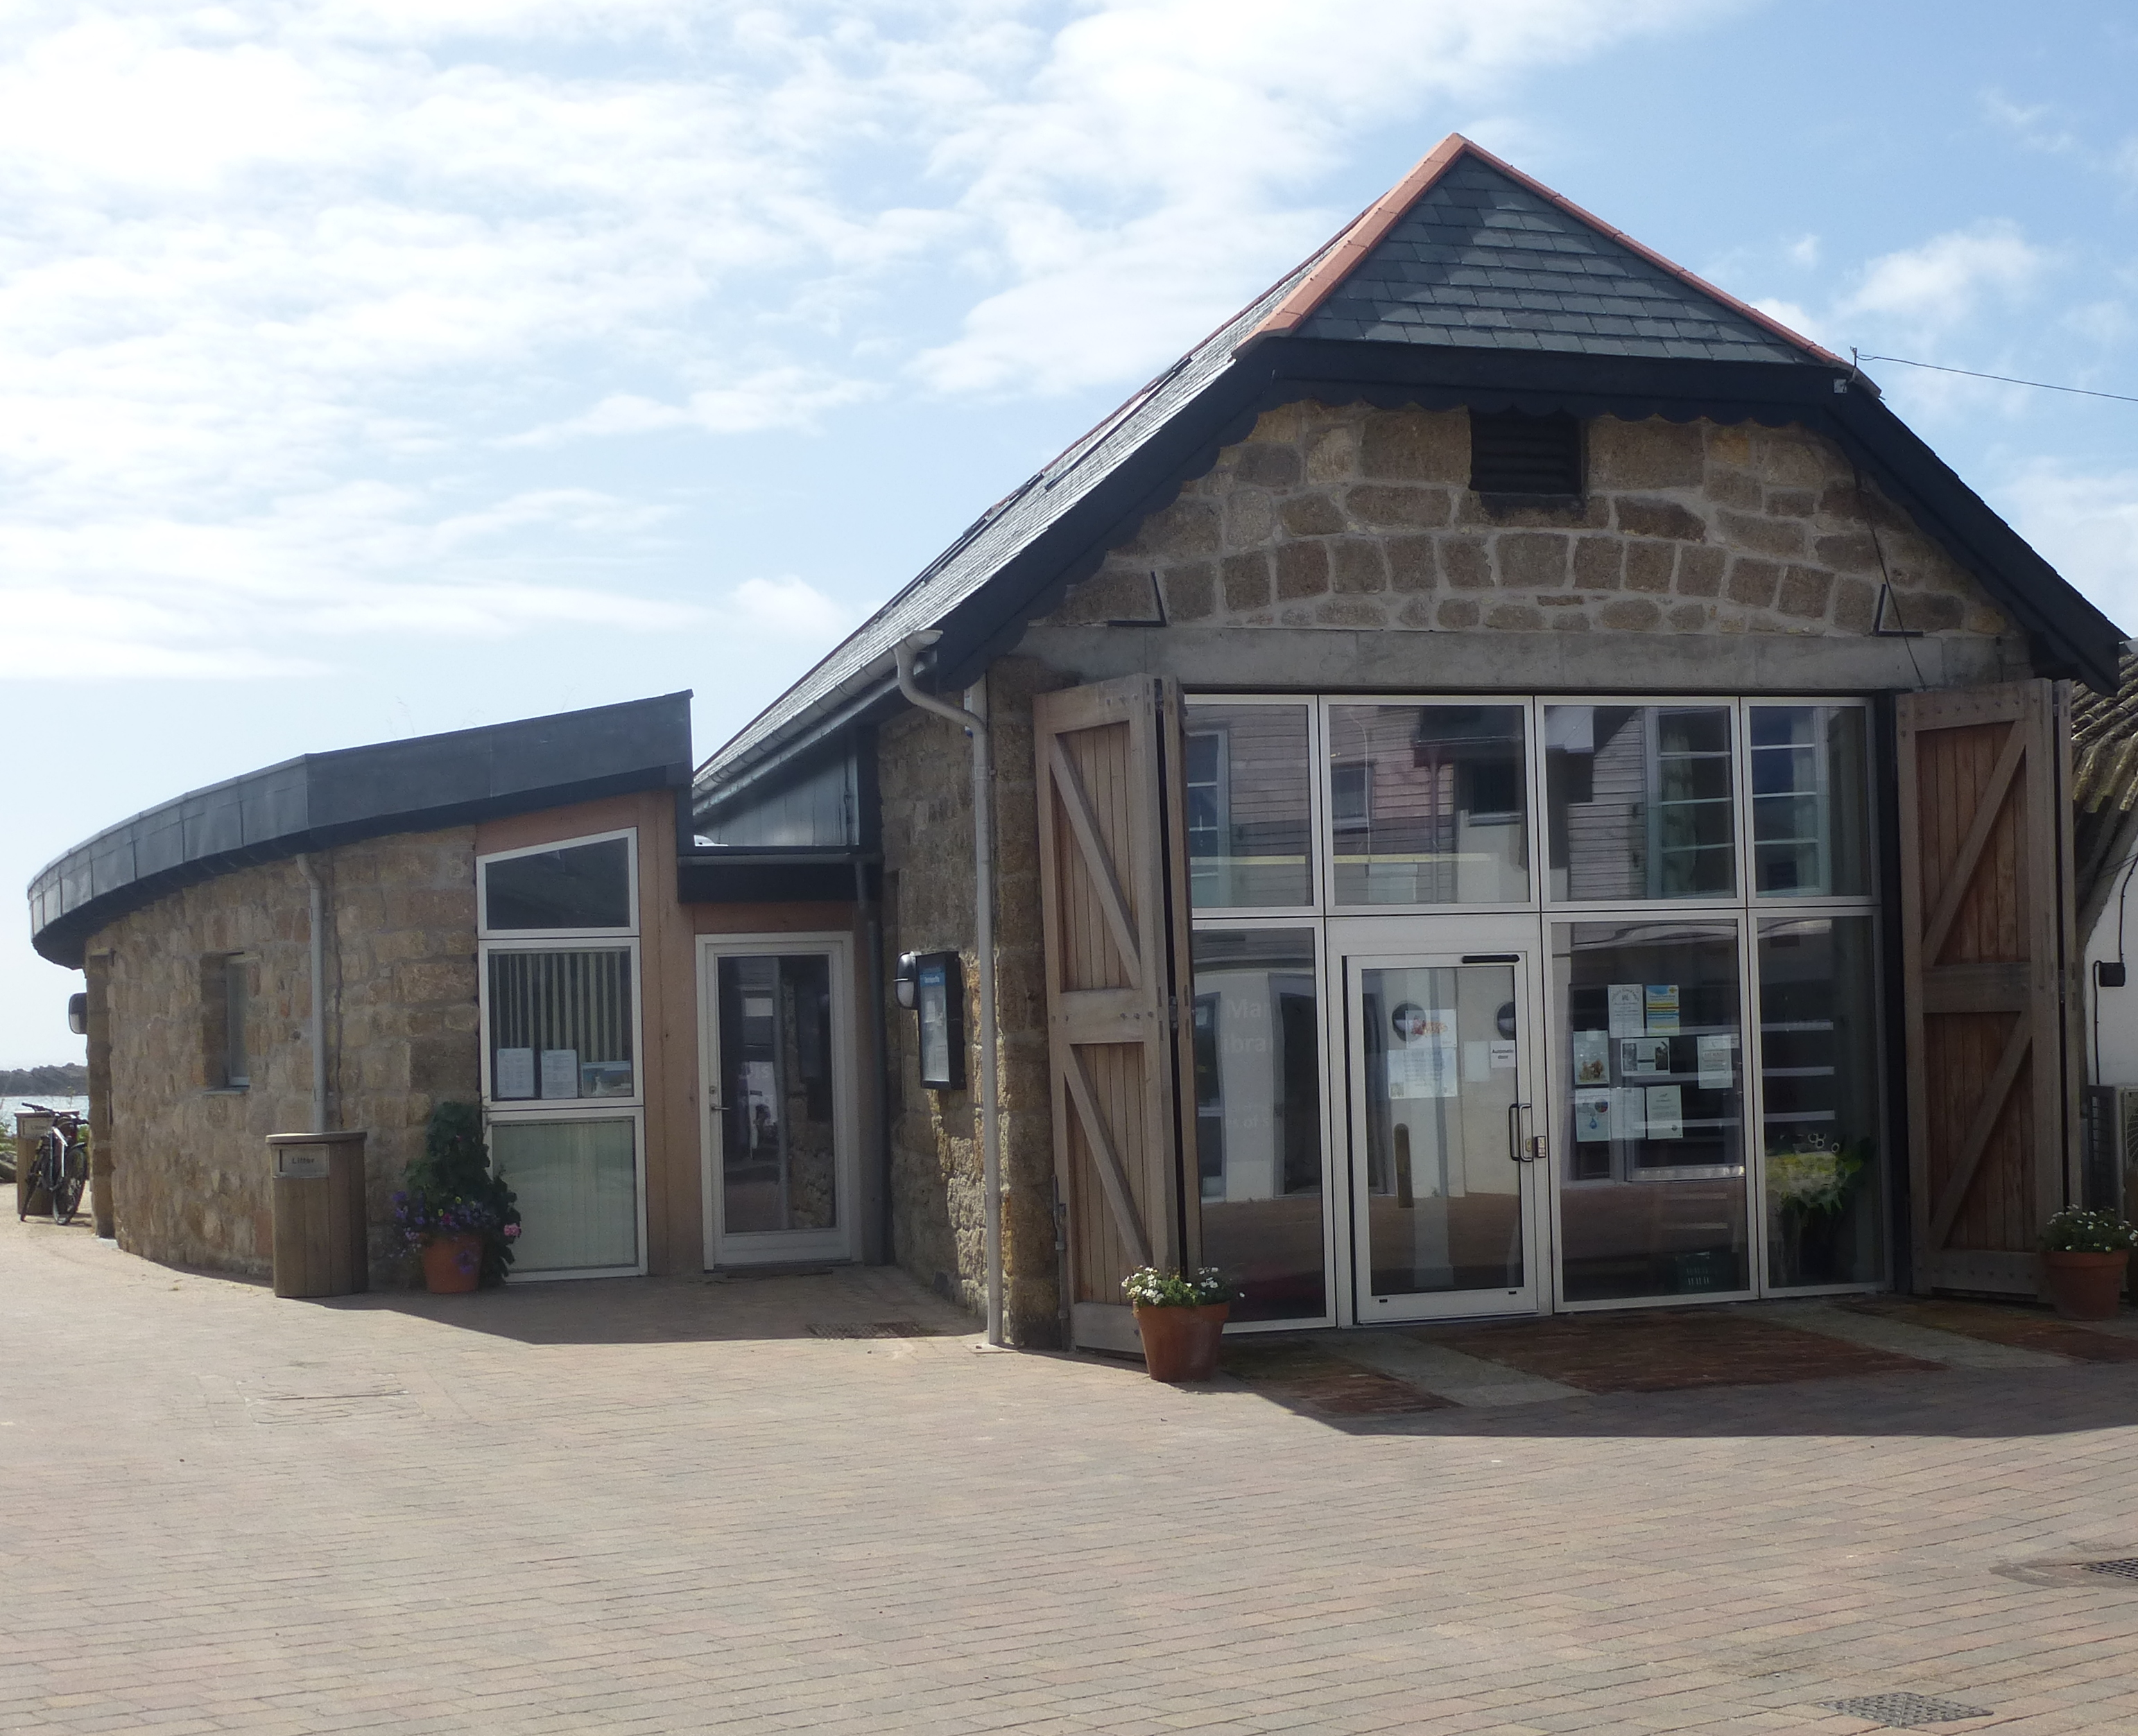 Register office and library, Scilly